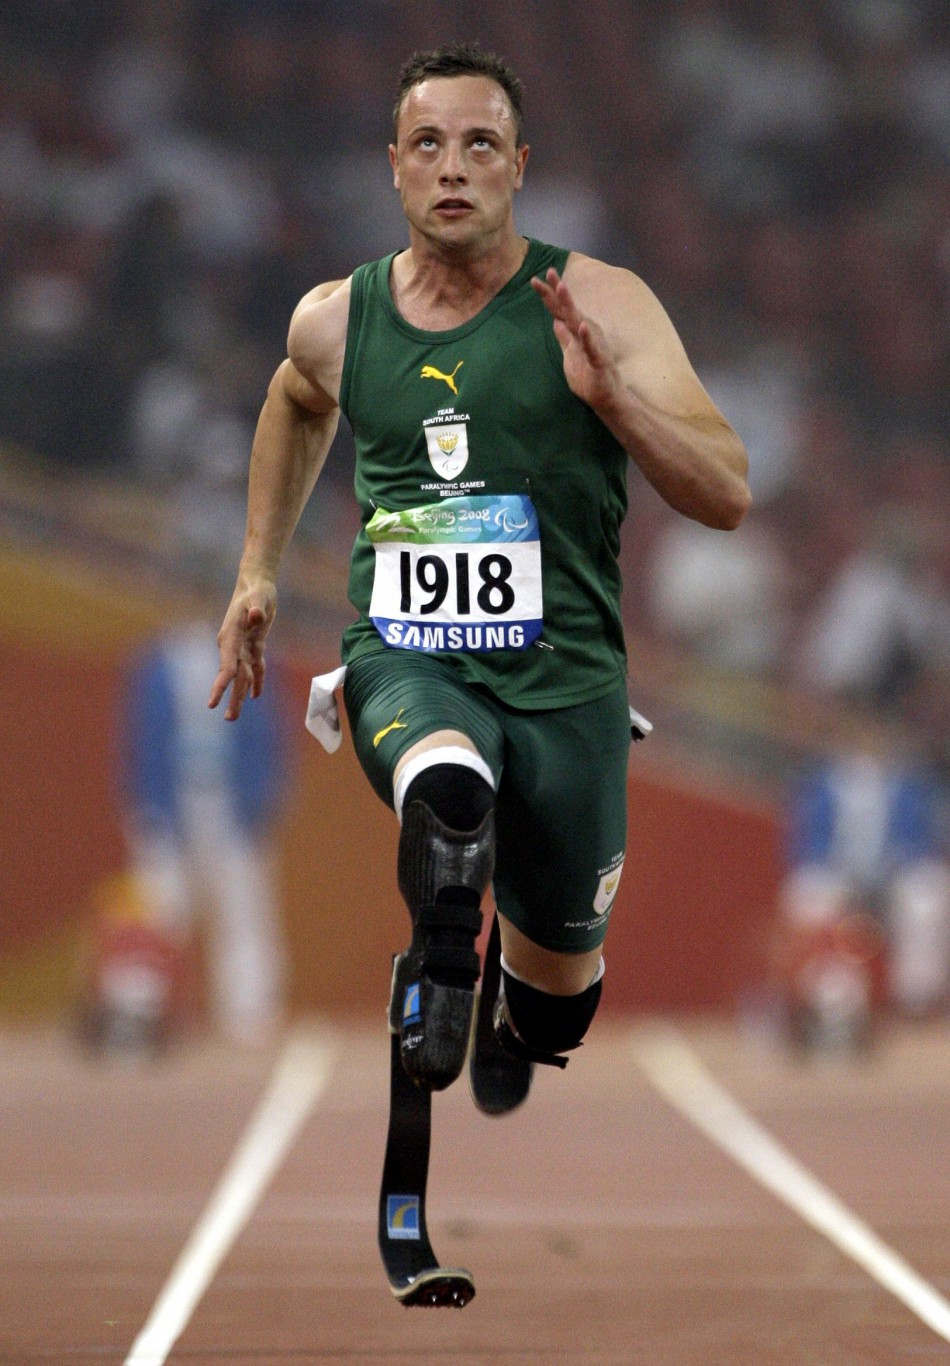 Inspirational Quotes Olympic Athletes furthermore Oscar Pistorius Trial Paralympian Reportedly Dating Teen College Student While Awaiting Judgement On Murder Of Reeva Steenk  541227 as well 336330 Athlete further Olympic Heroes Who Fell From Grace From Oscar Pistorius To Marion Jones furthermore Prosthetics. on oscar pistorius track